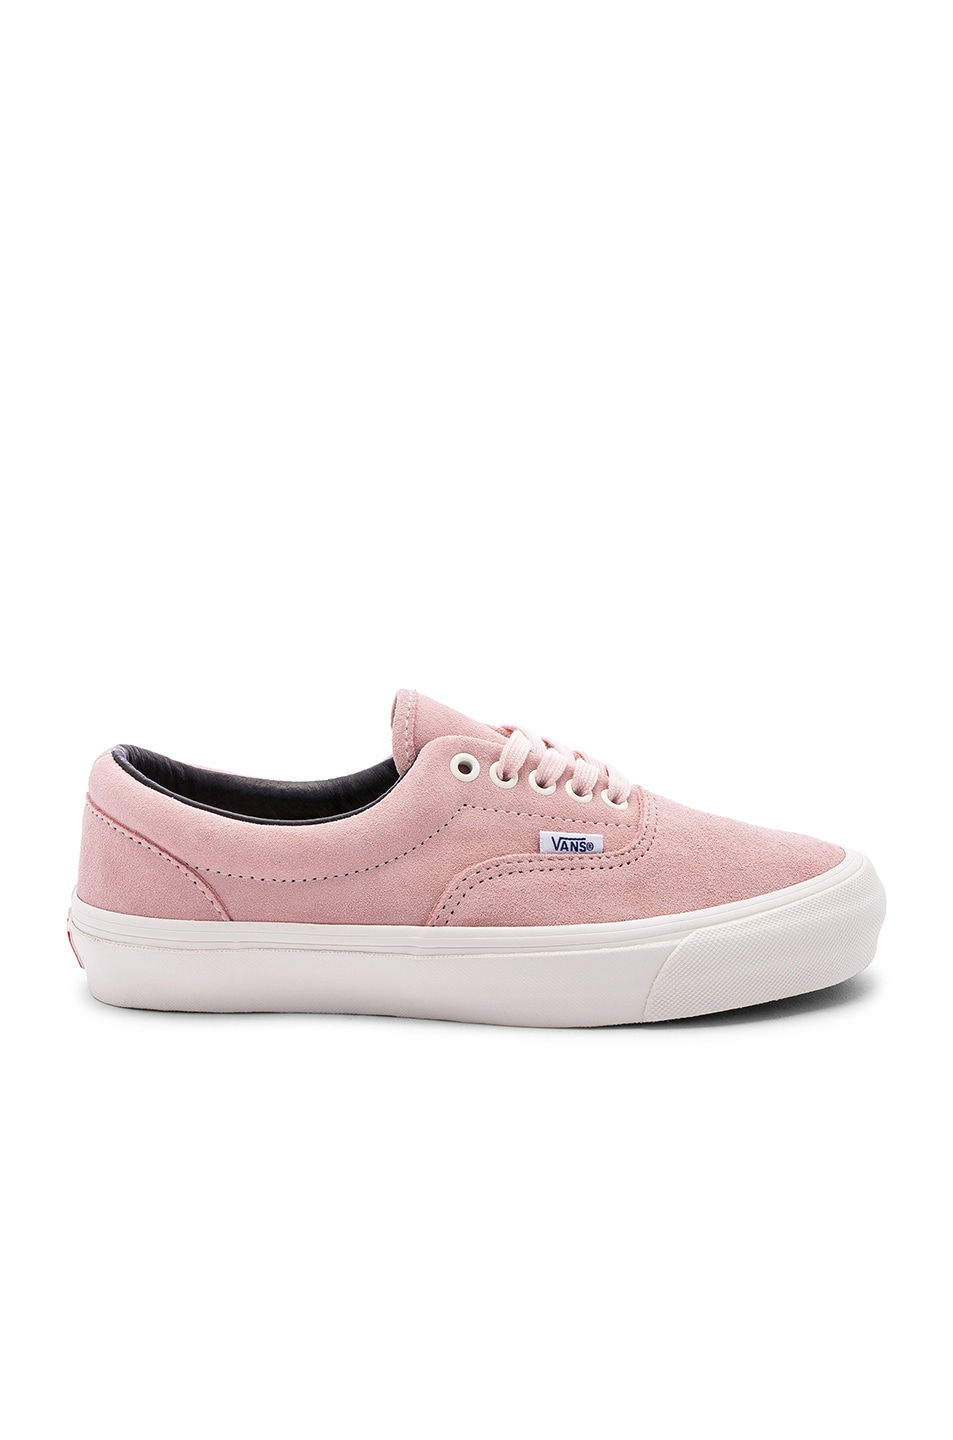 Image 1 of Vans Vault OG Era LX in Pale Dogwood